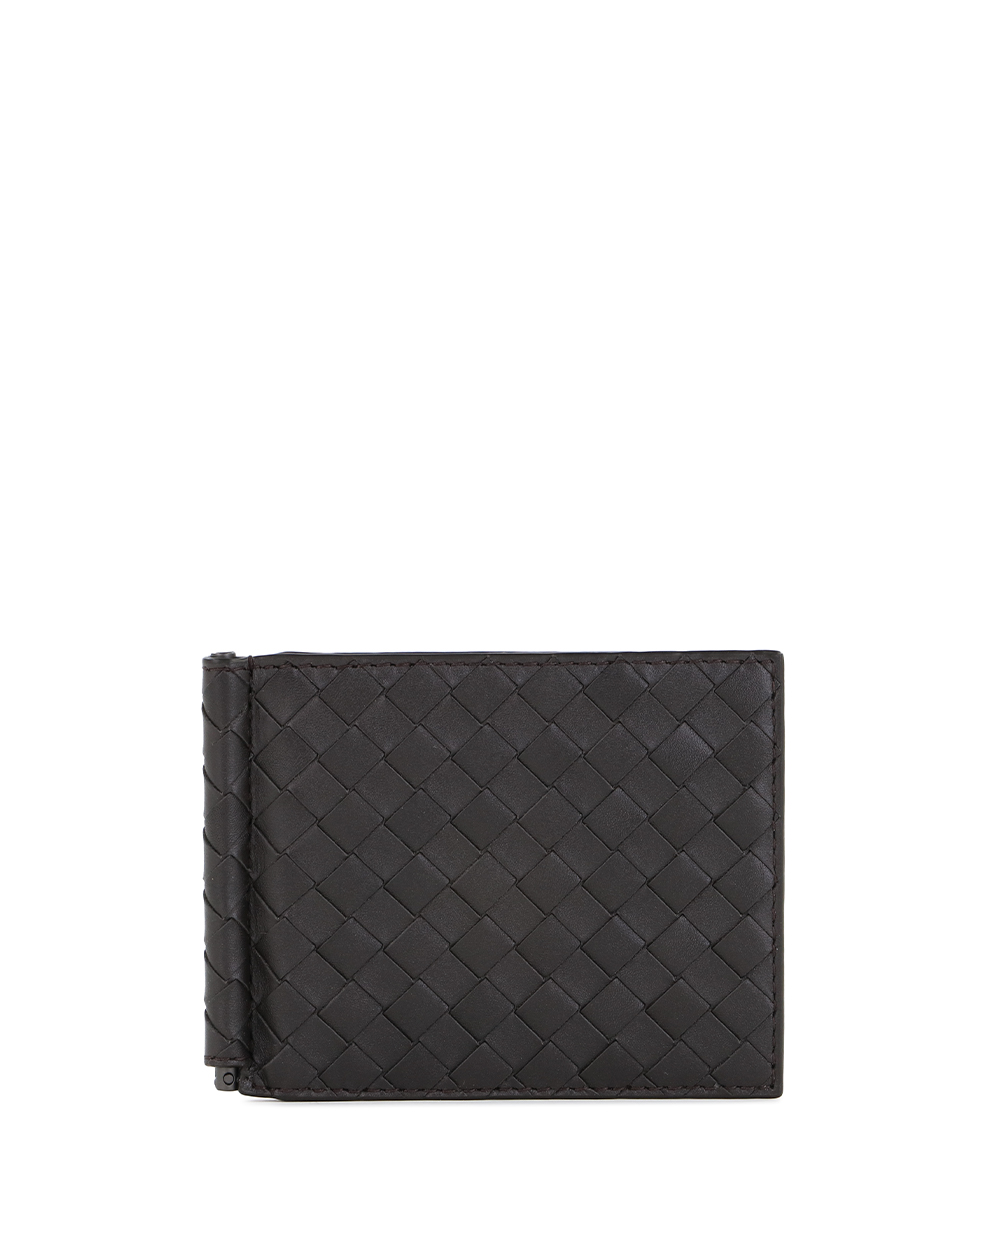 Woven Calf Leather Wallet 123180V4651